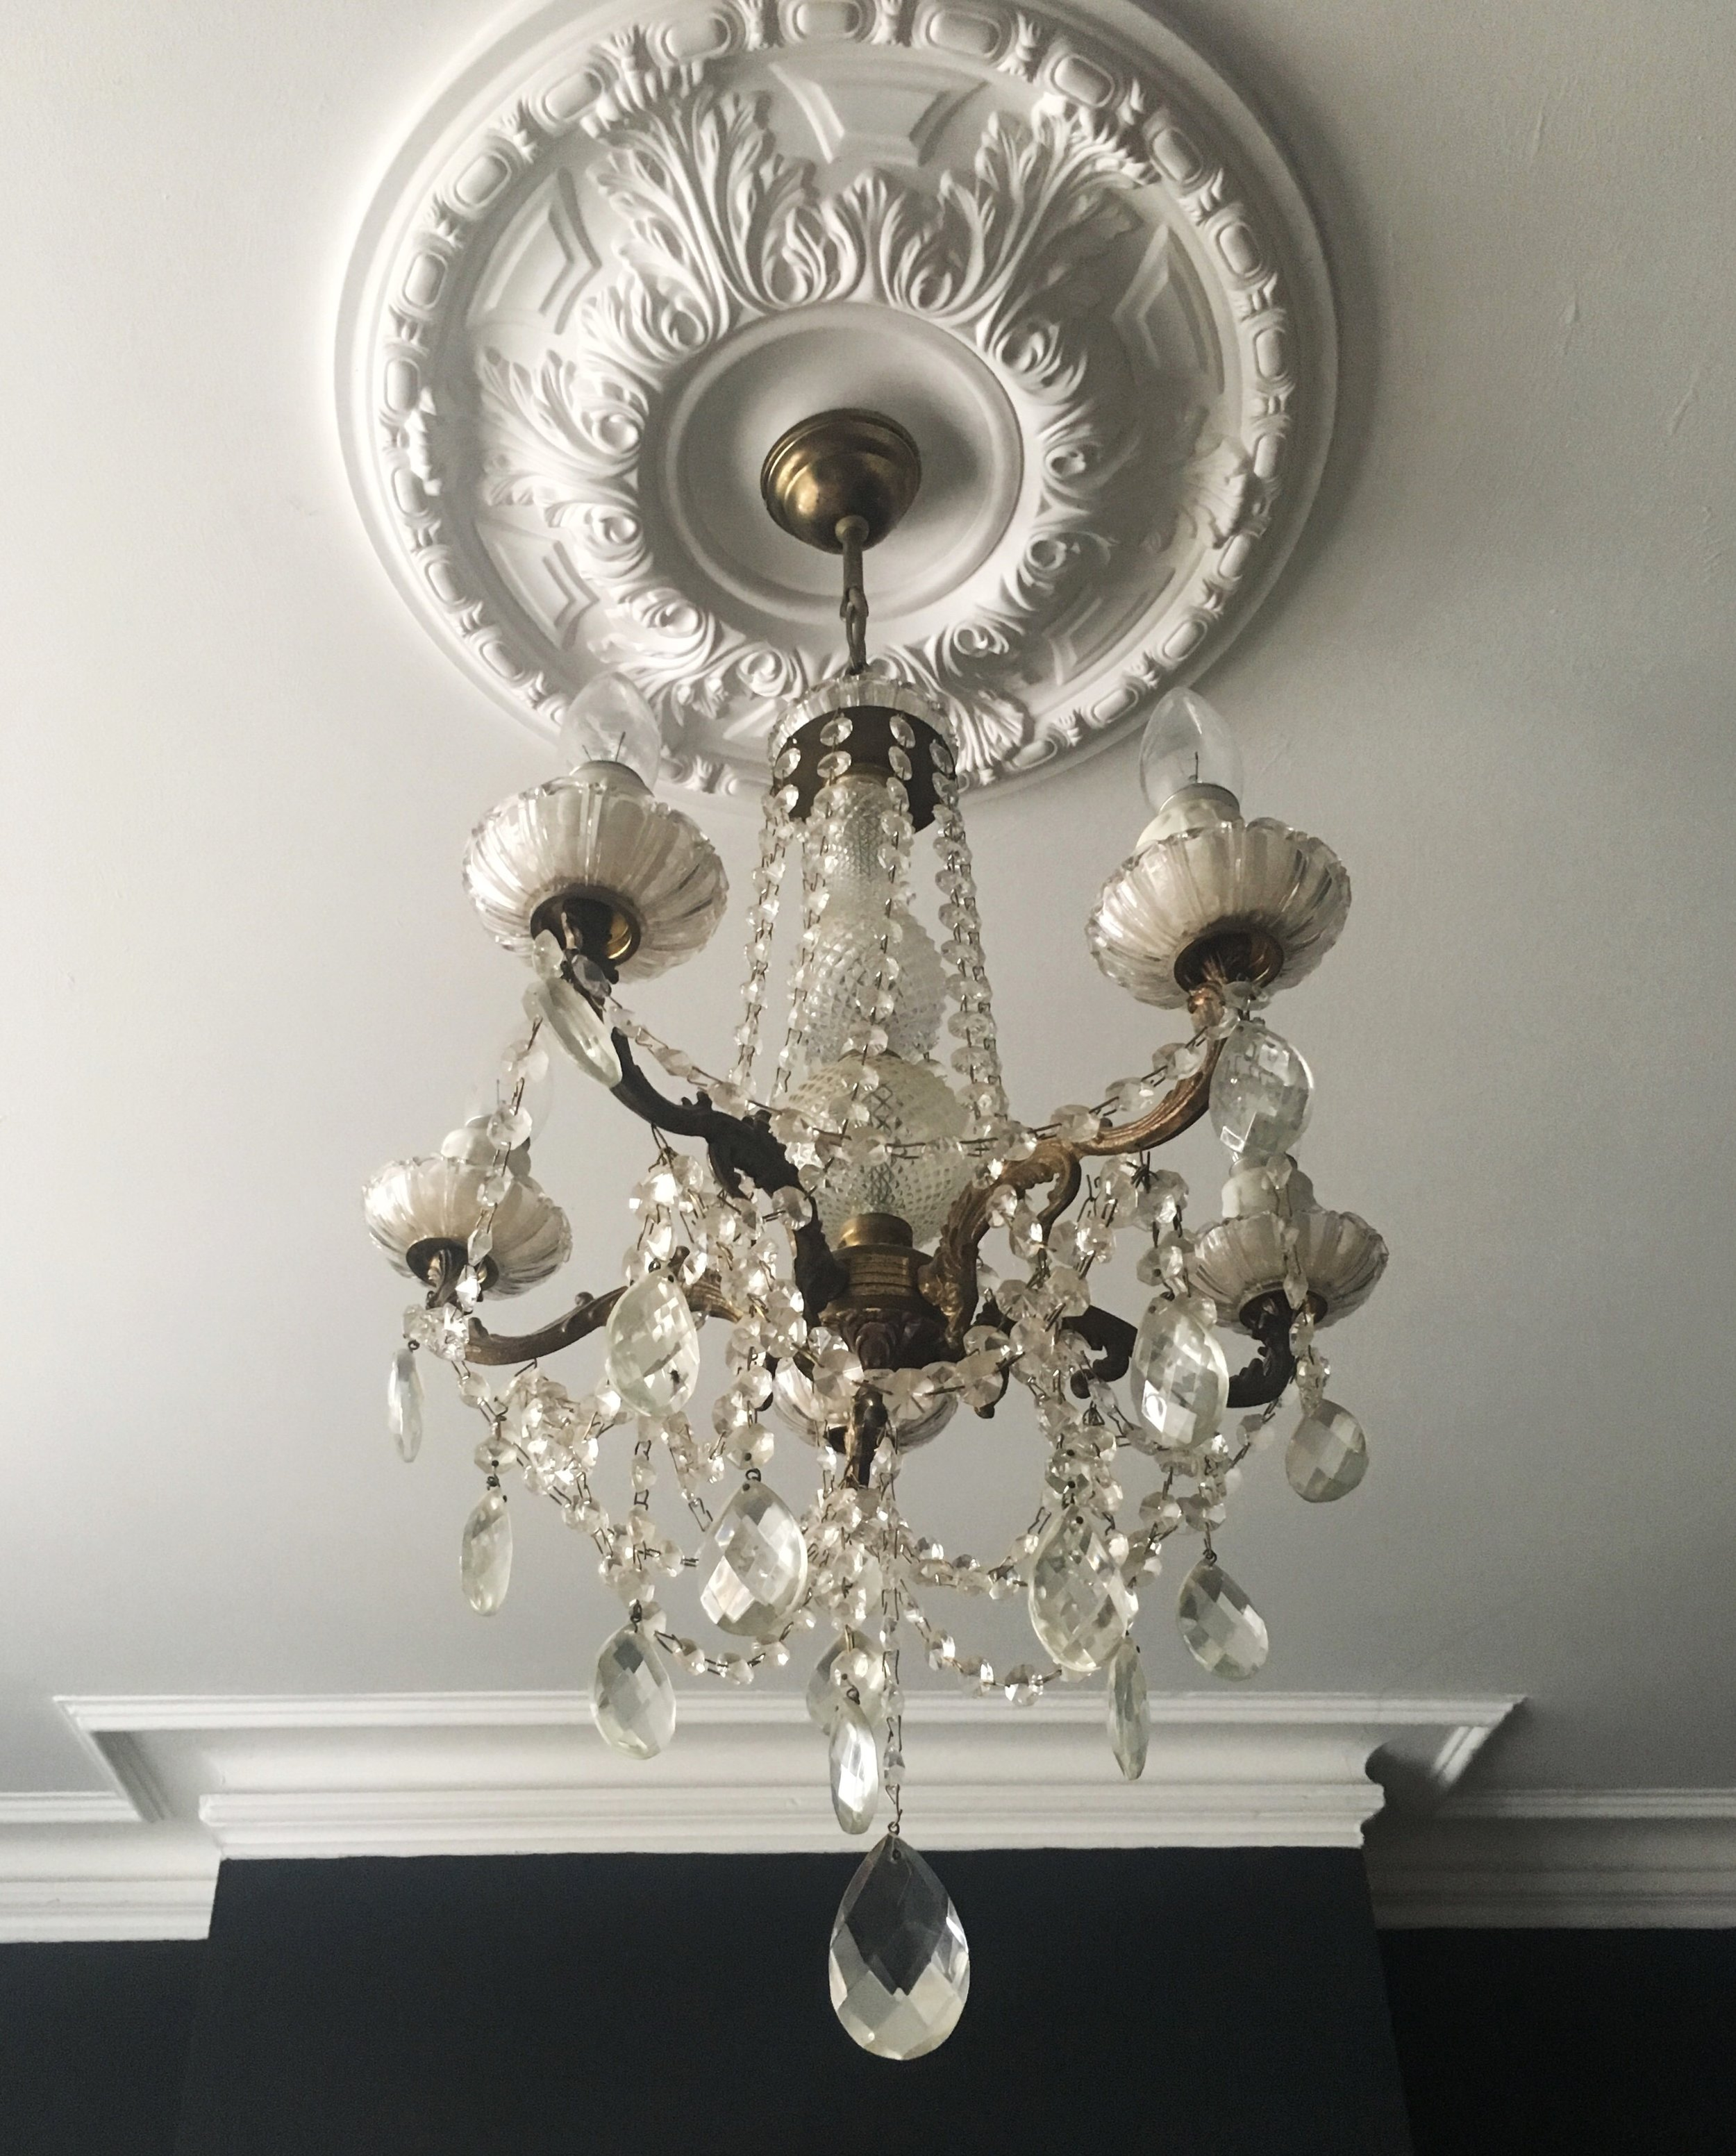 Victorian style ceiling Rose in our lounge, with original victorian coving.